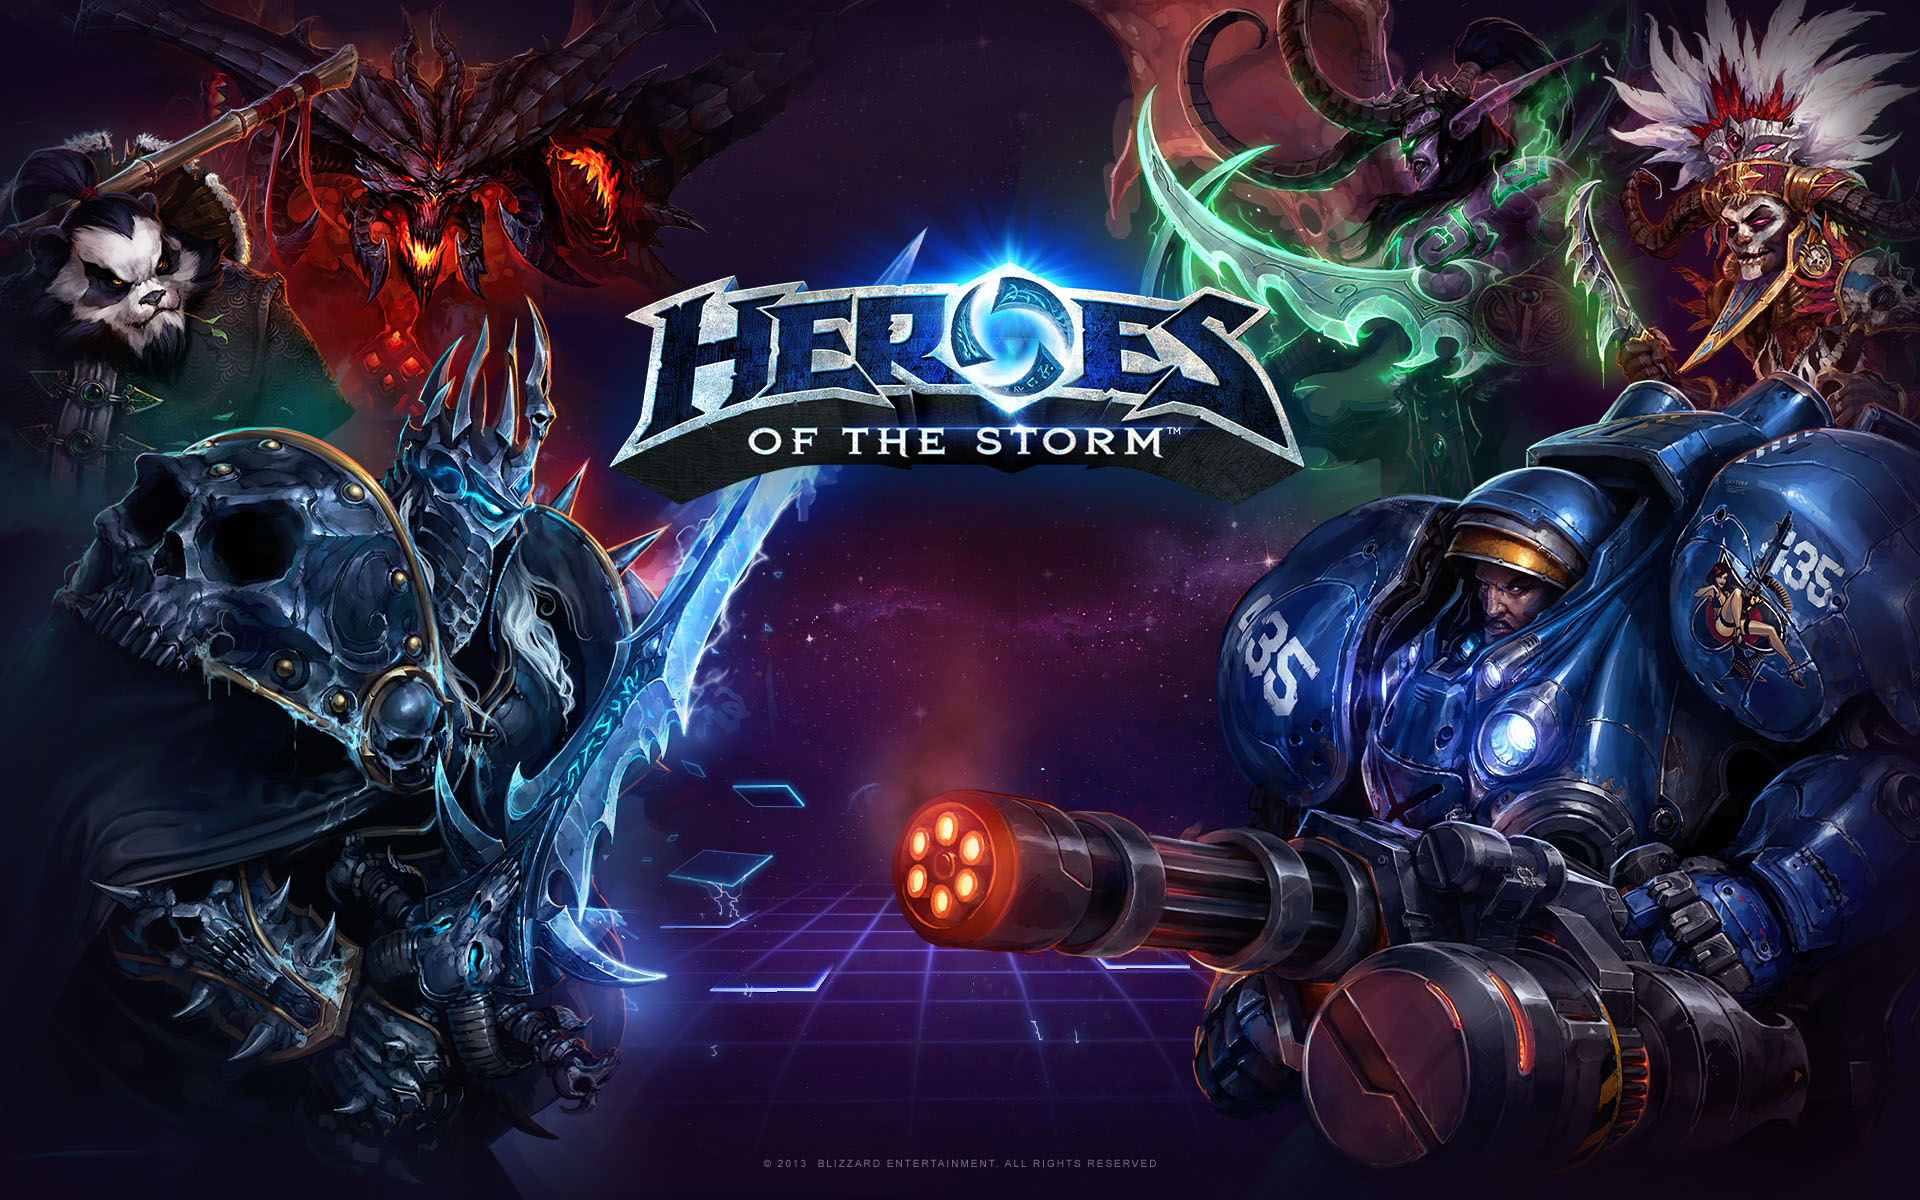 blizzard-photo-heroes-of-the-storm-hots-splash-screen-core-characters.jpg